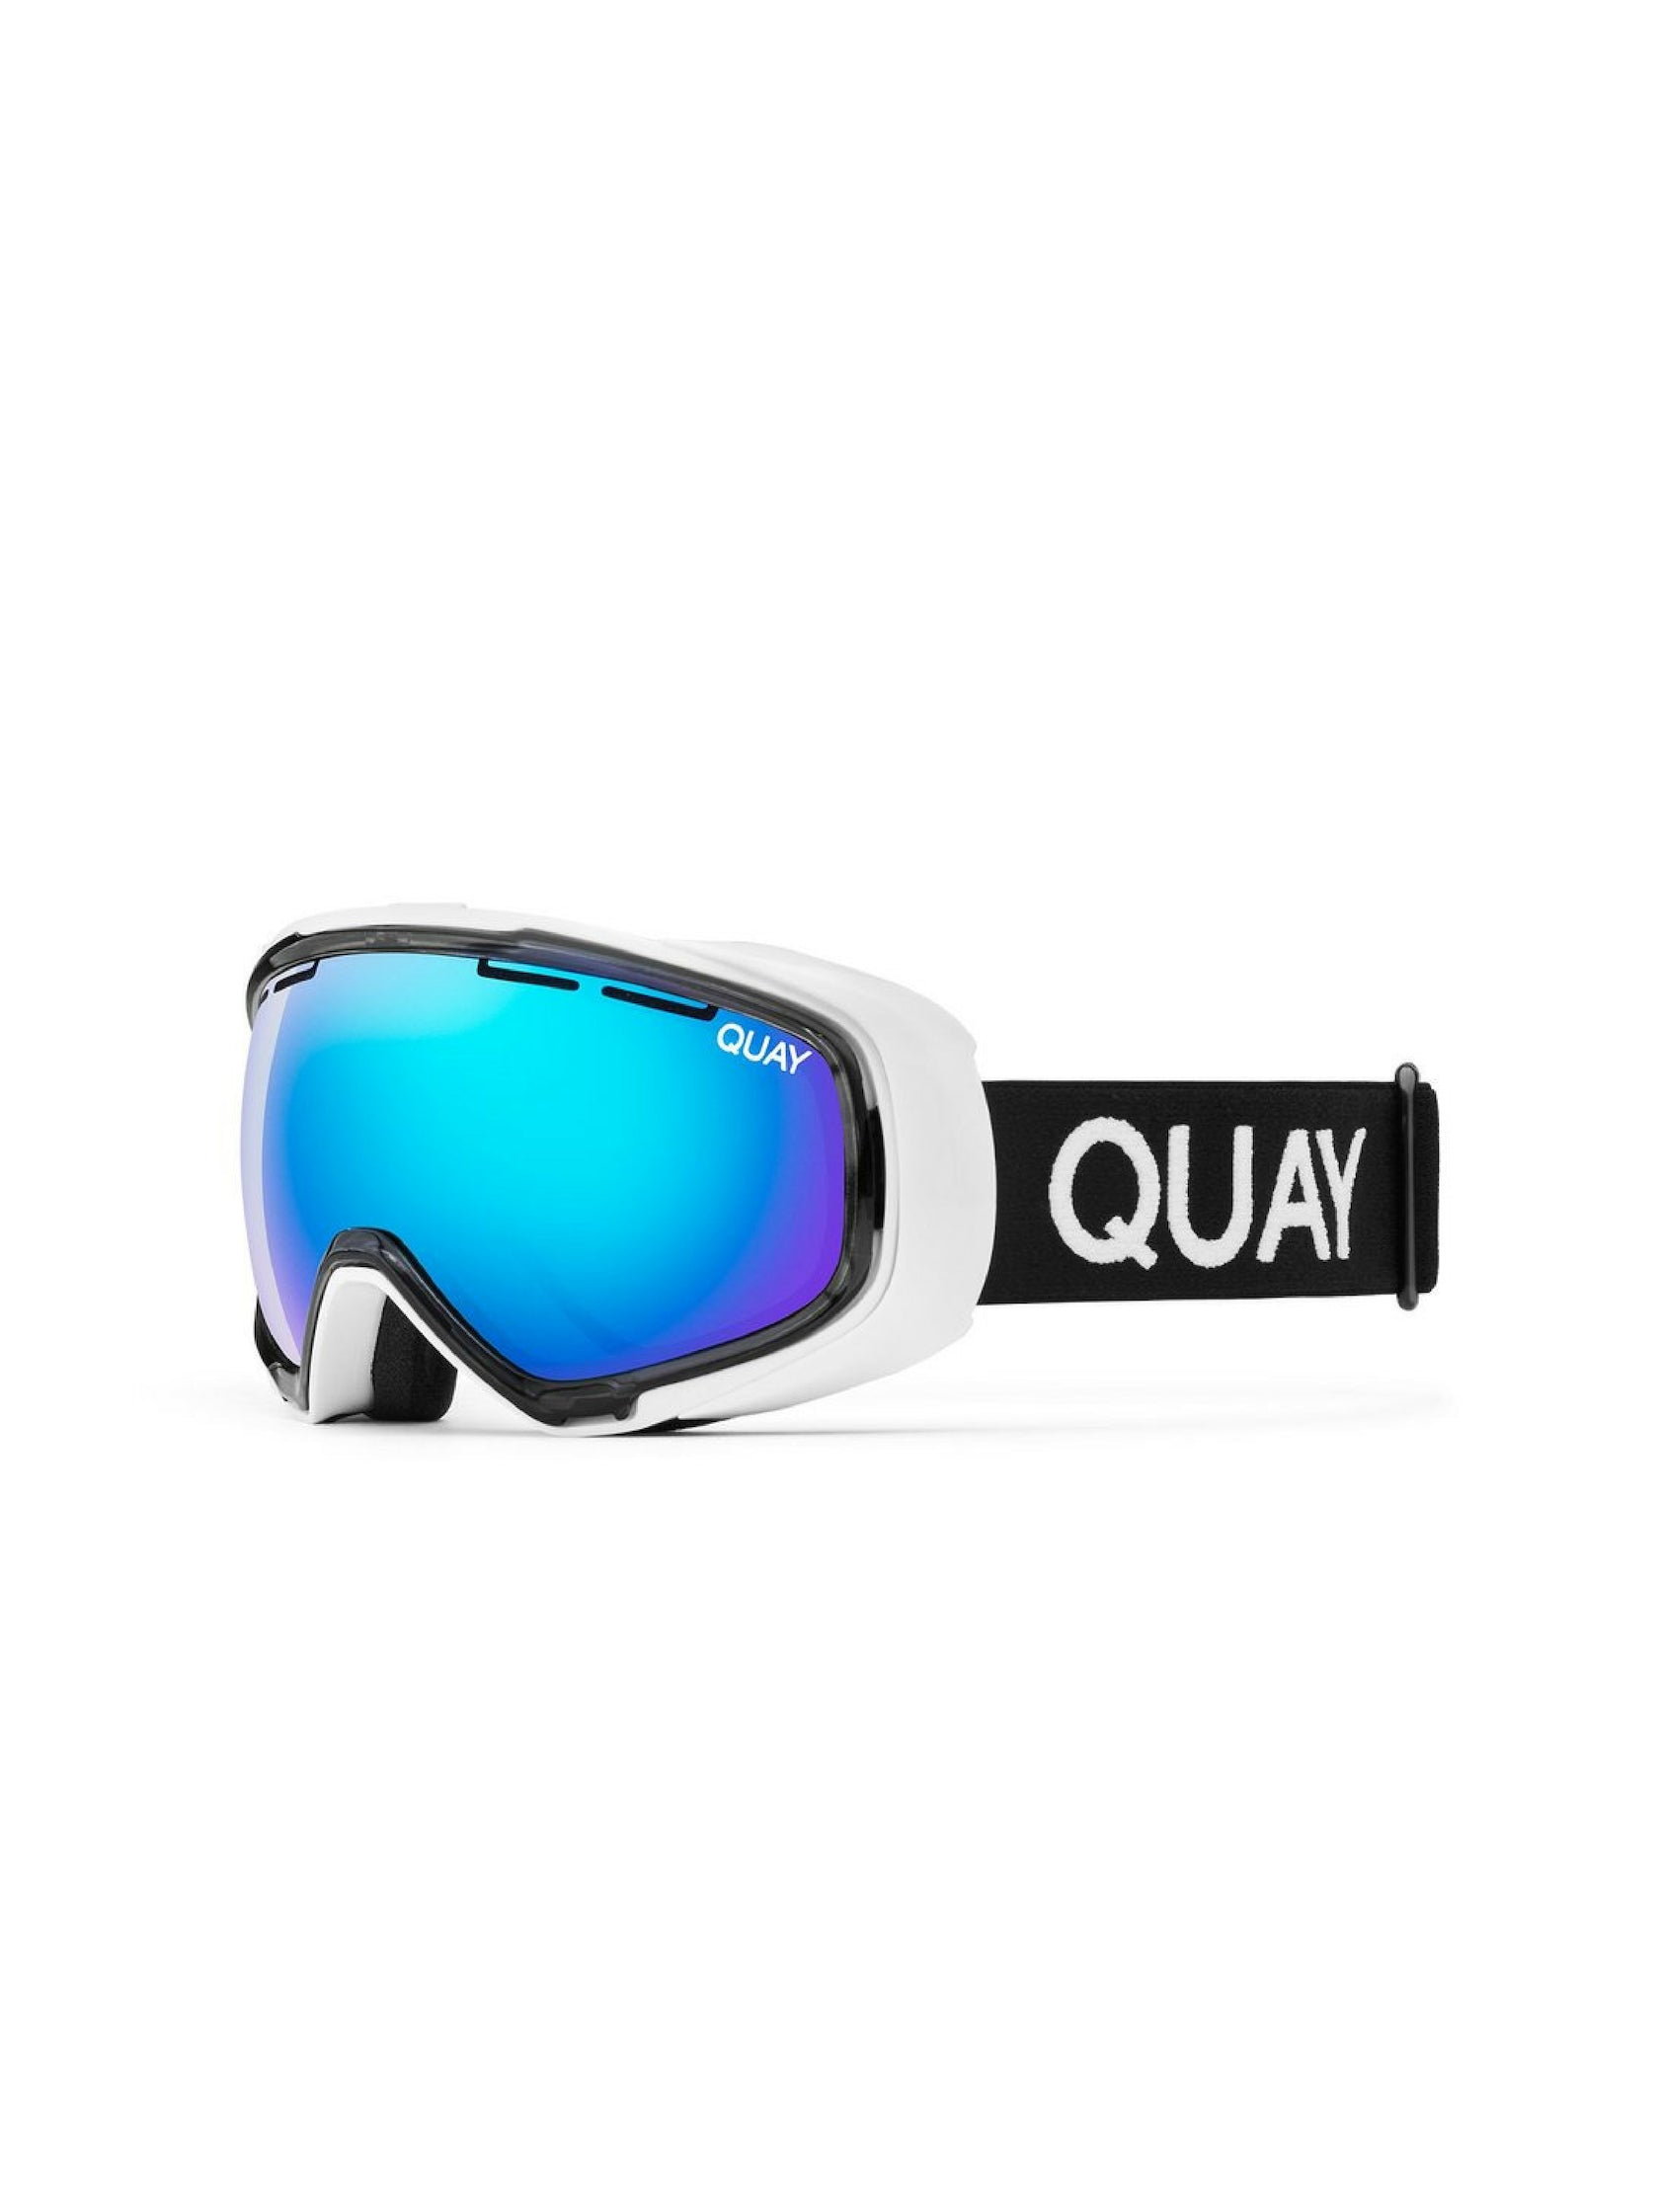 Girl wearing a sunglasses rental from Quay Australia called White Out